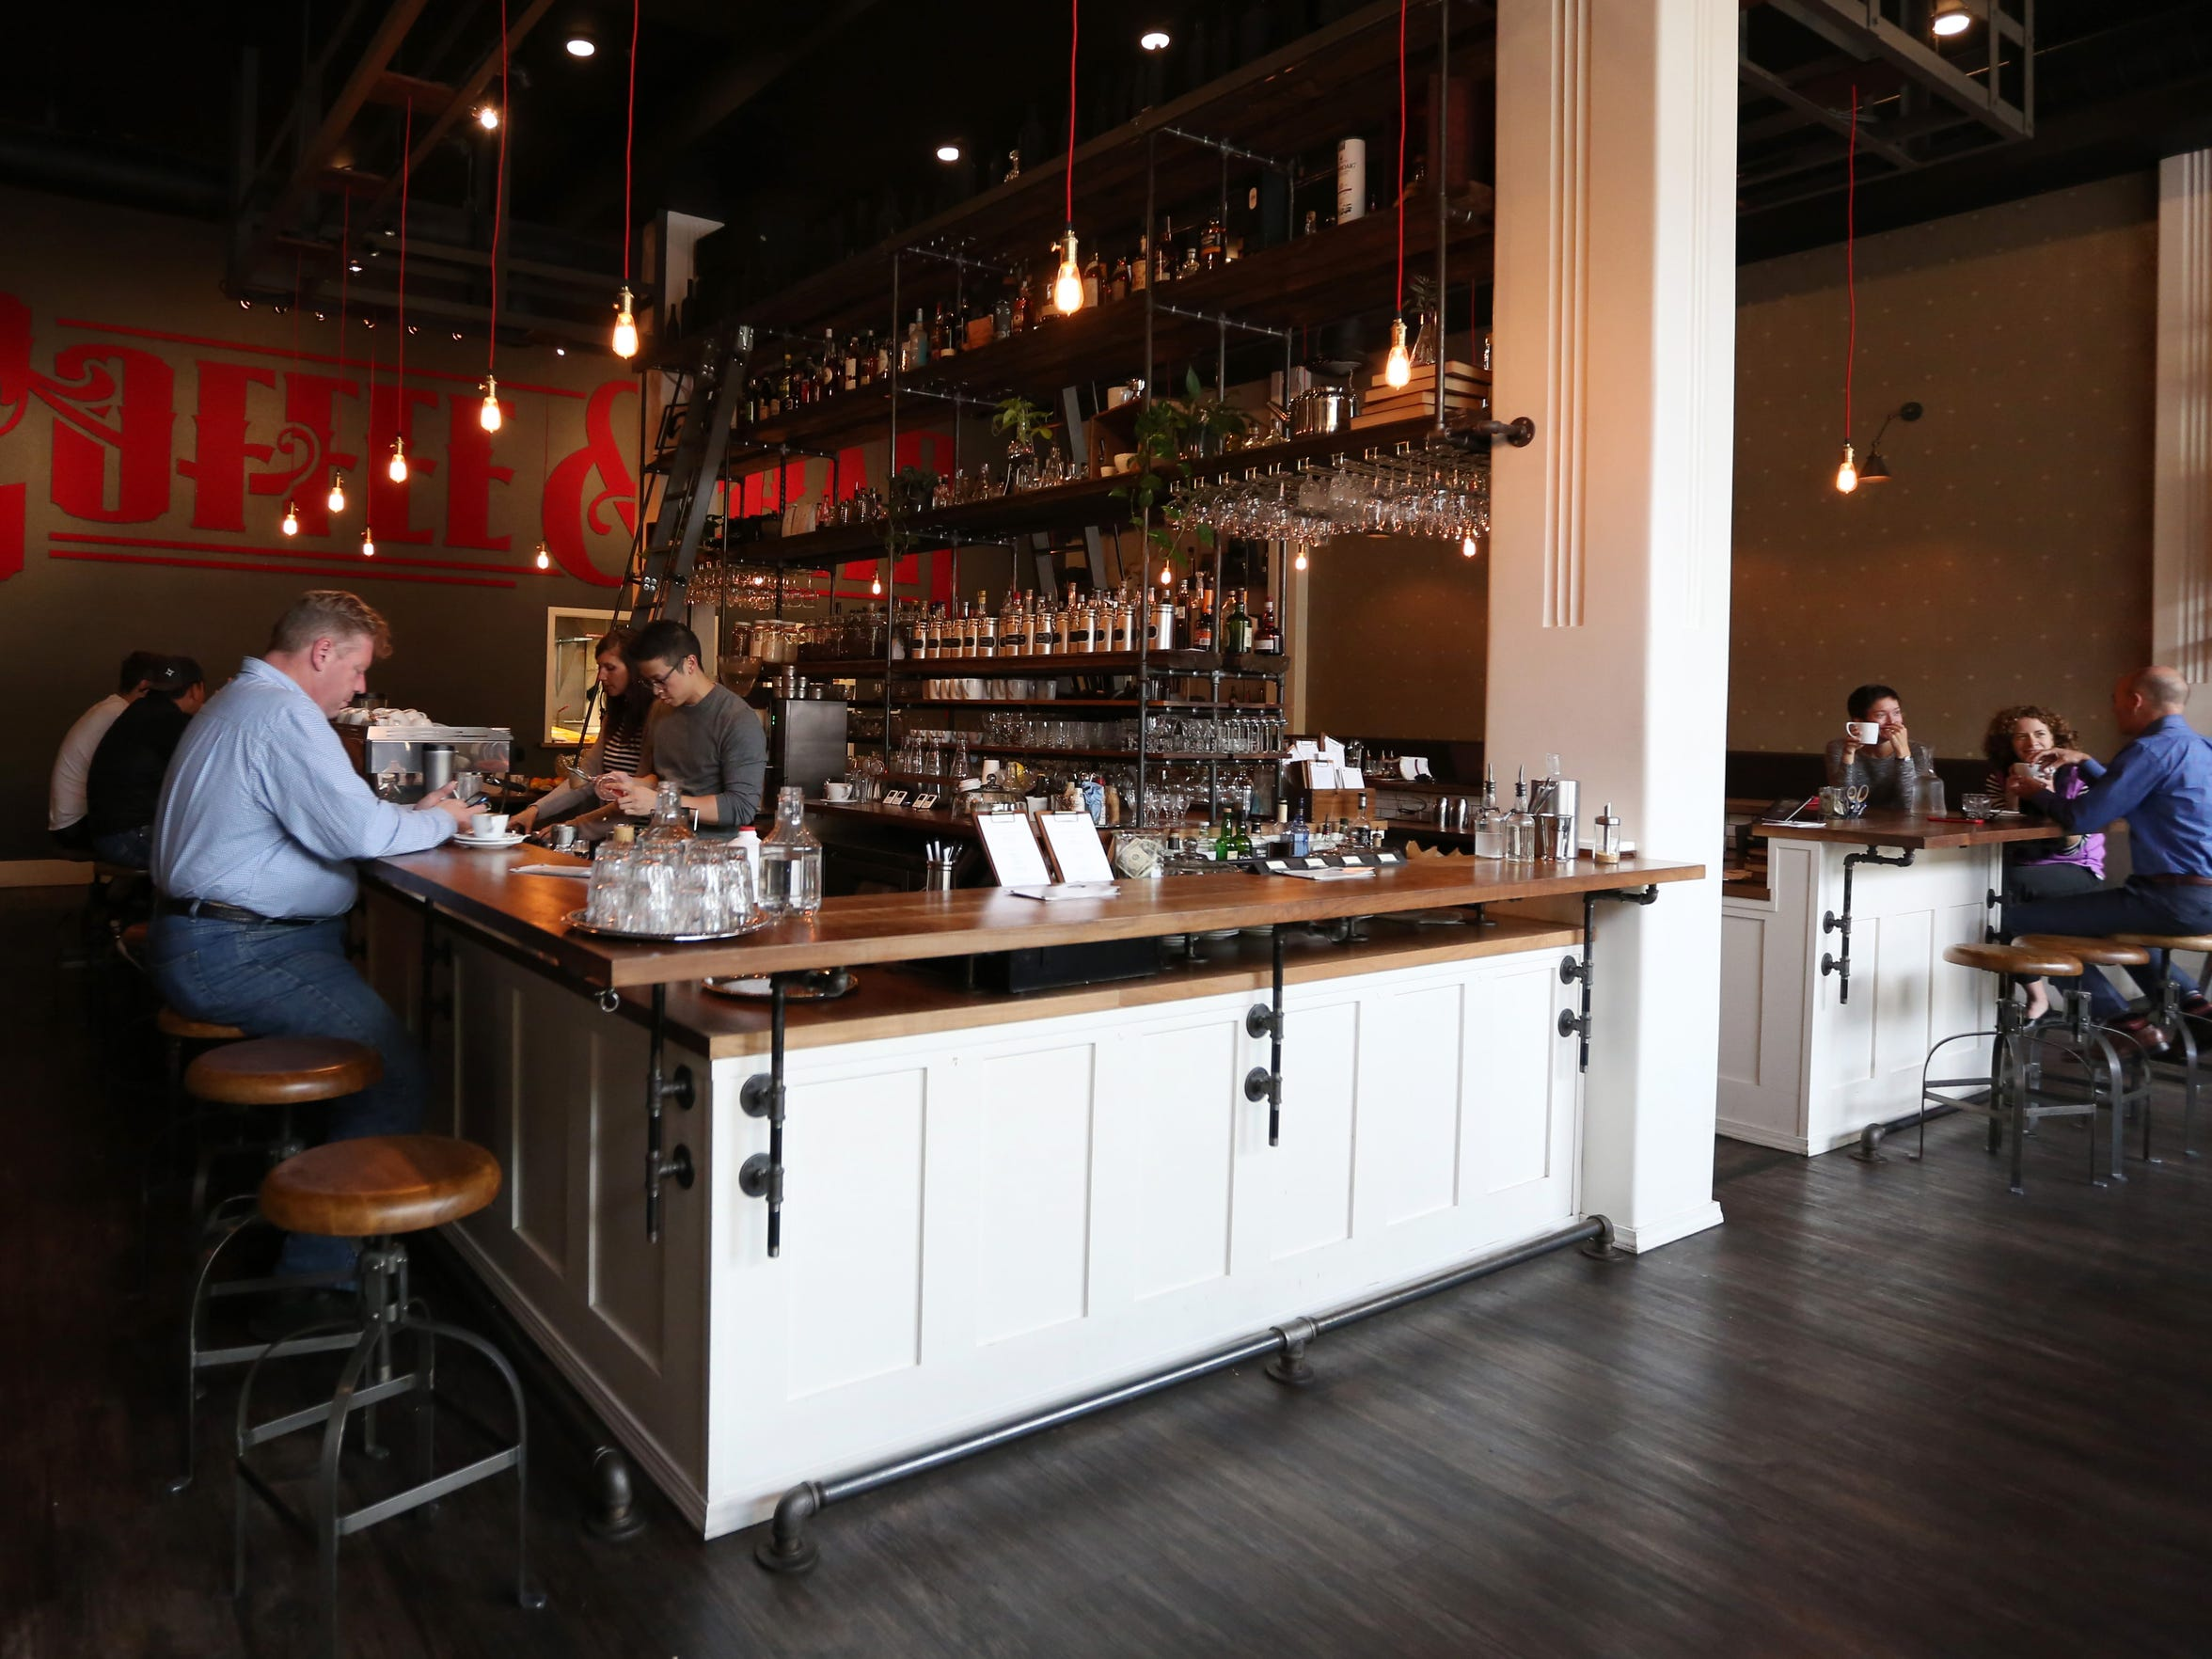 Customers sit at the bar at Archive Coffee & Bar in downtown Salem. During the day, Archive roasts and serves specialty coffee. At night, spirits, cocktails, wine and beer are served.